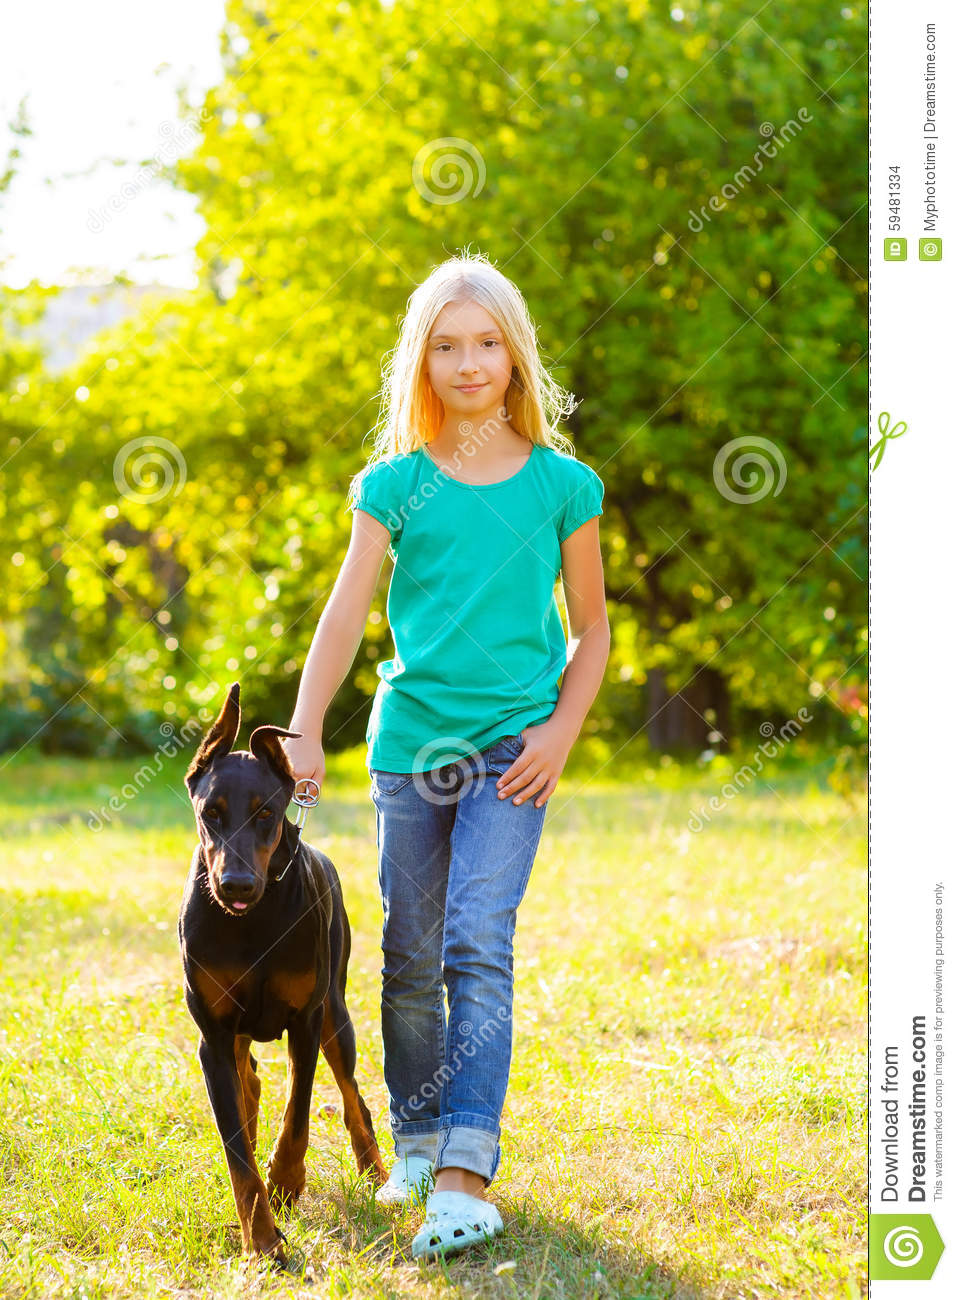 Girl Playing With Dog In Park